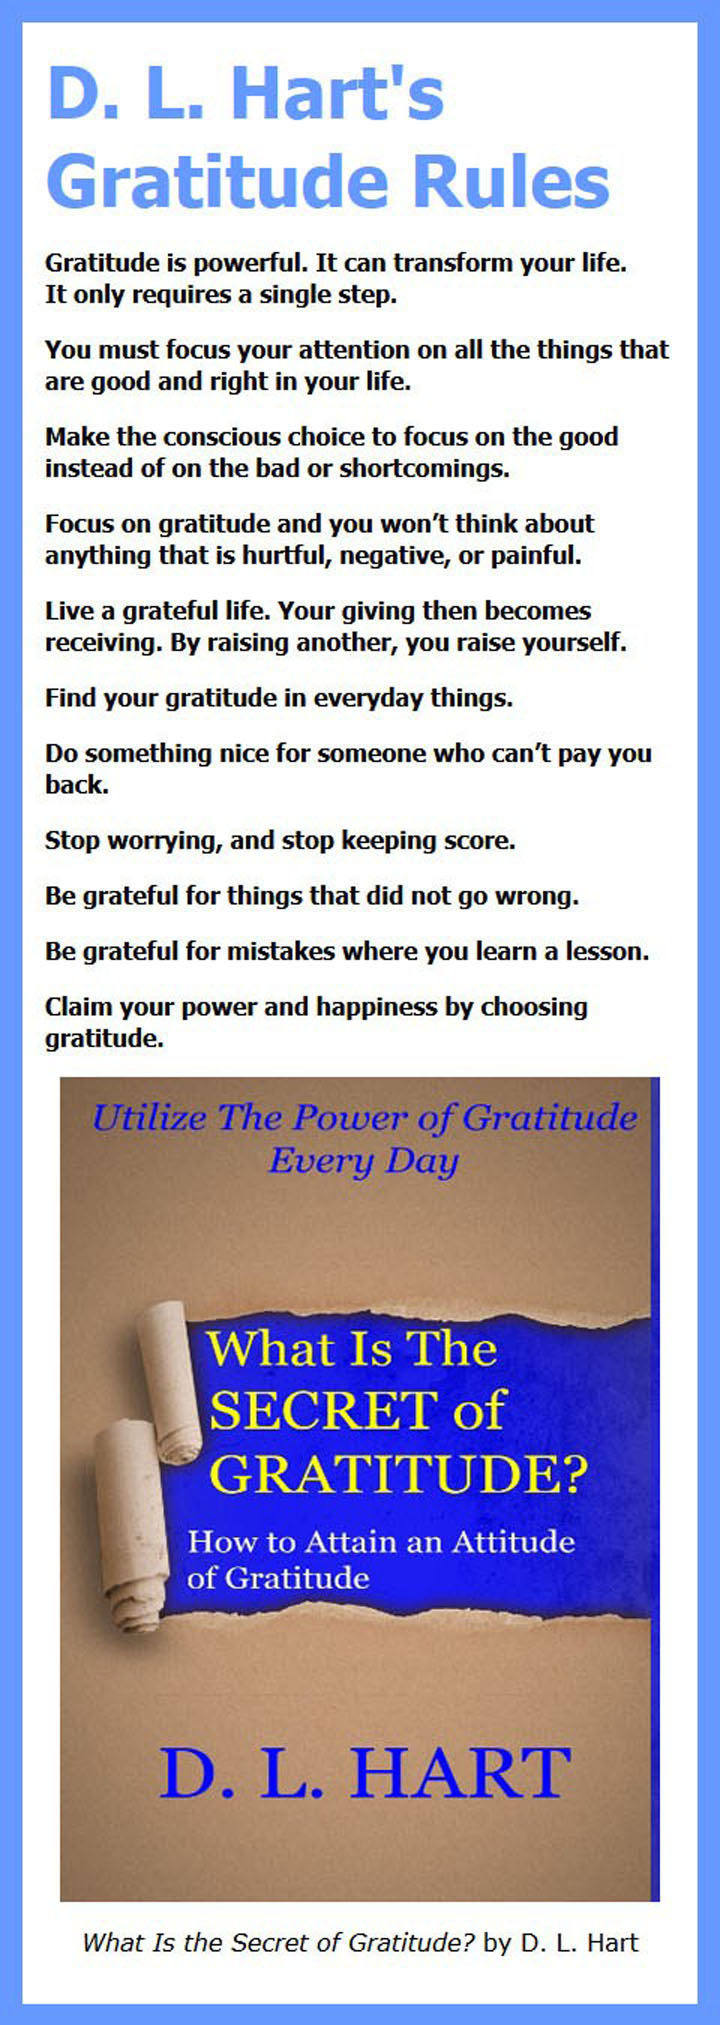 Gratitude Rules by D L Hart: Gratitude is powerful. It can transform your life. It only requires a single step. You must focus your attention on all the things that are good and right in your life.